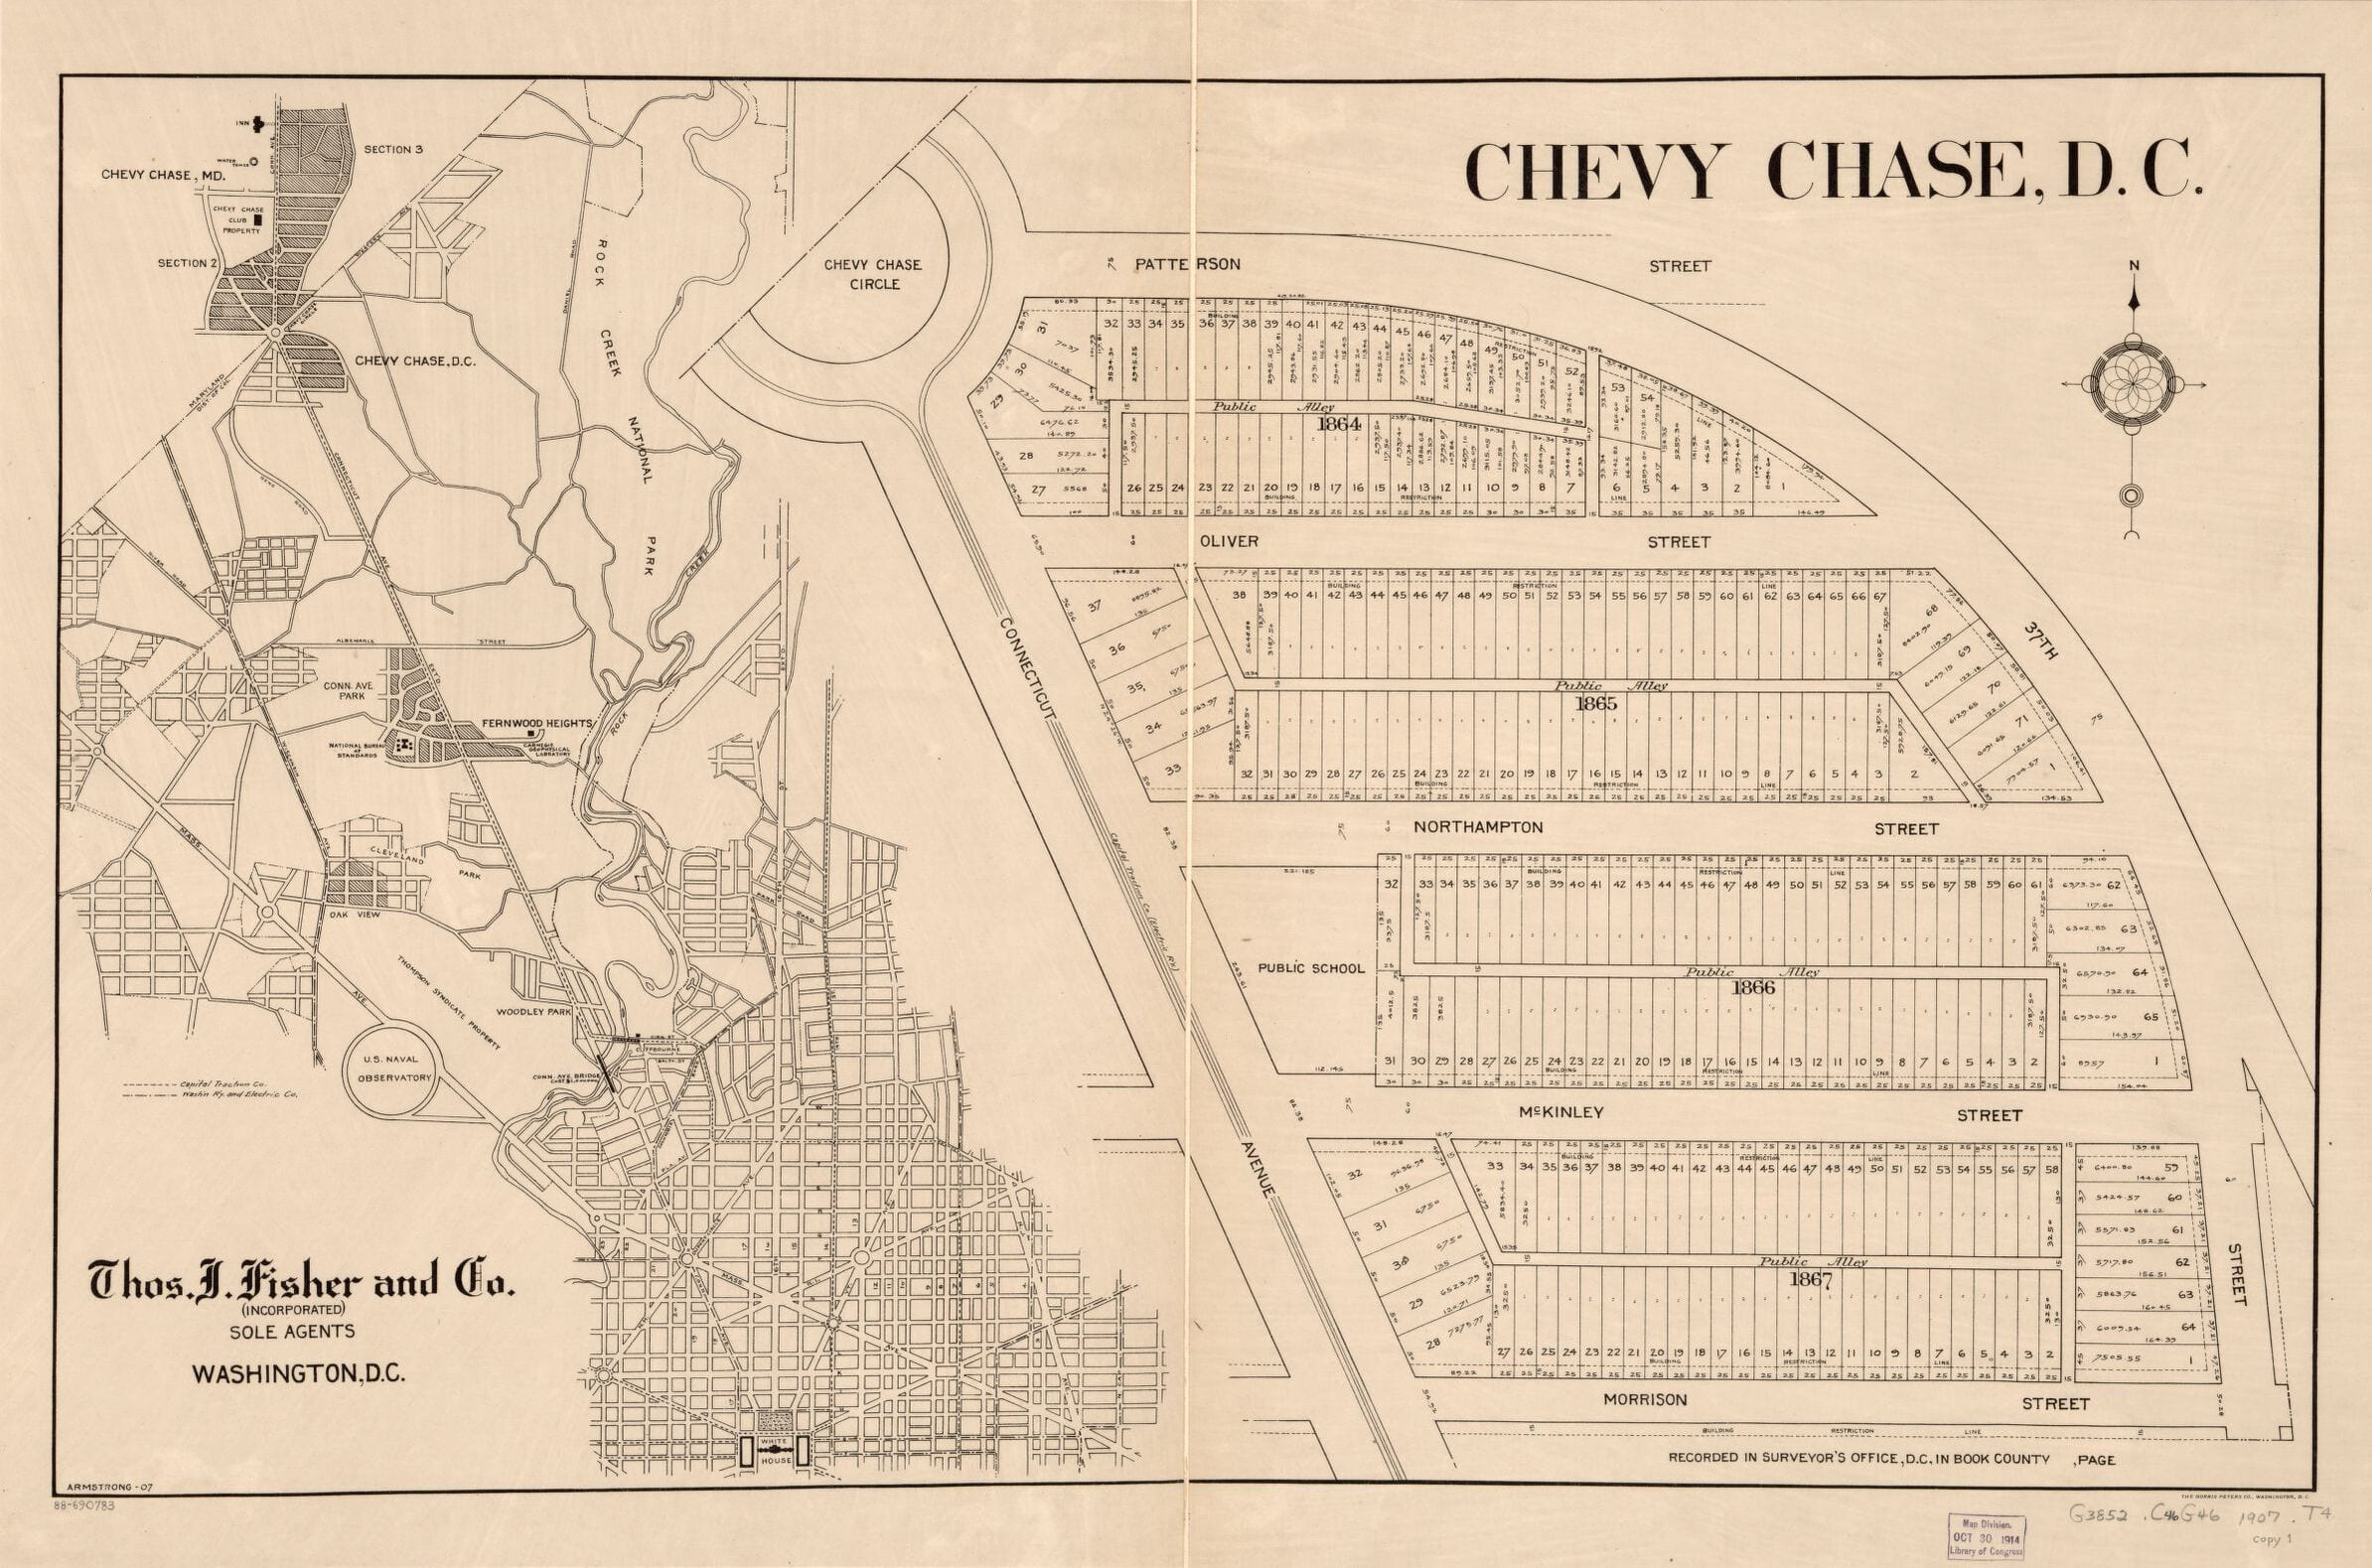 Chevy Chase Map From 1907